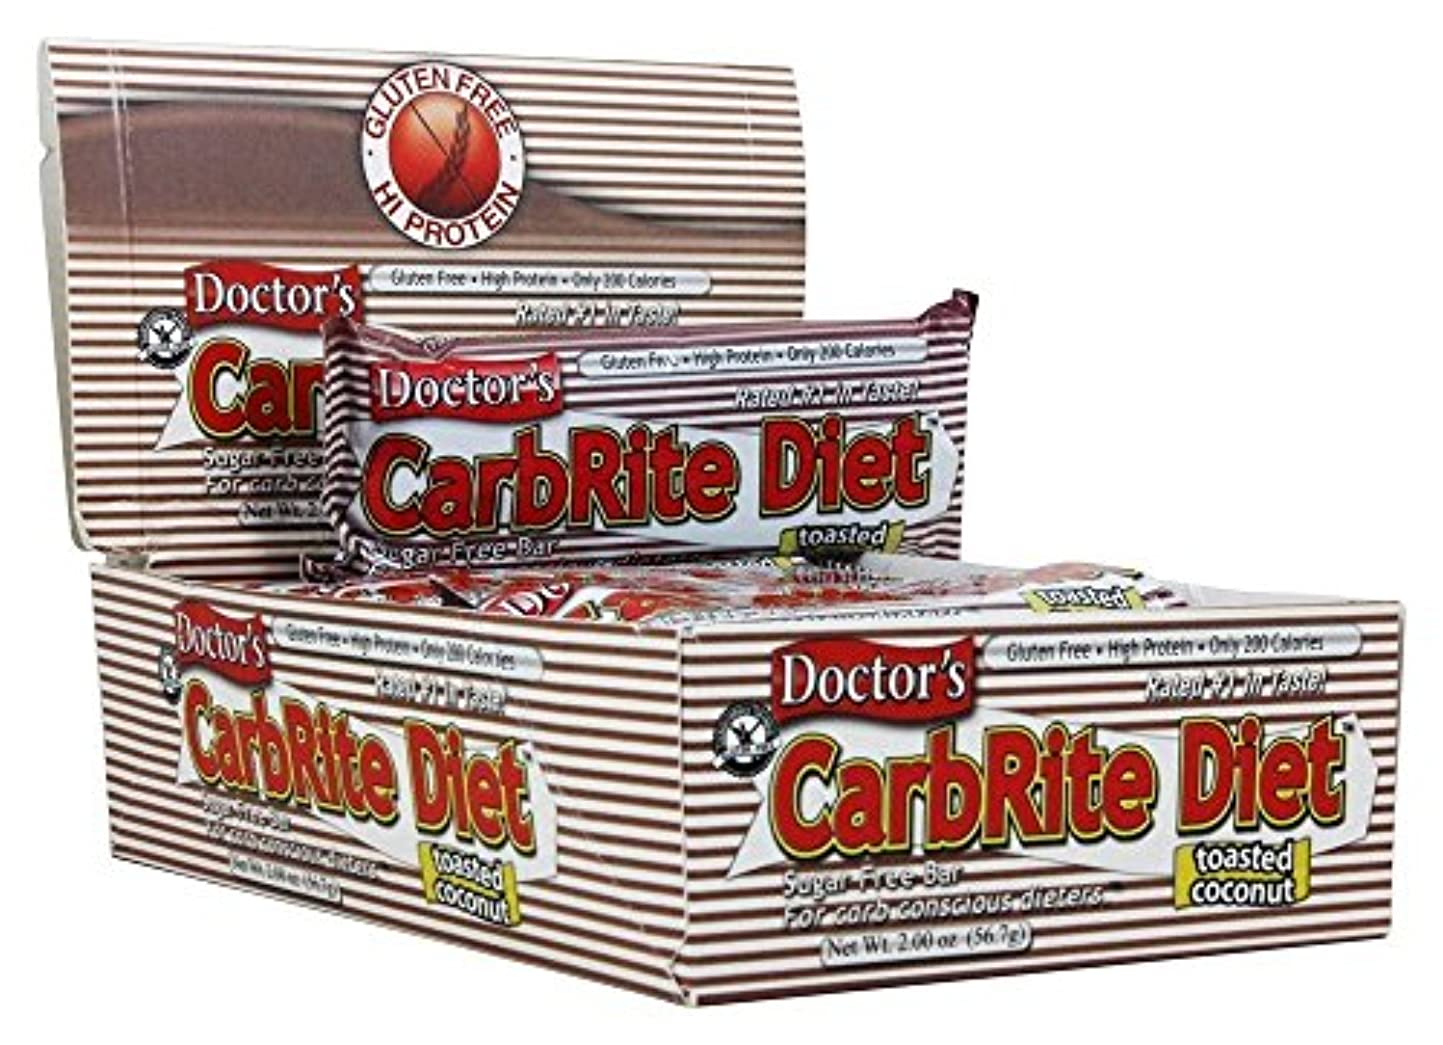 火曜日ミケランジェロ厚いDoctor's CarbRite Diet Toasted Coconut Bars, 2 oz, 12 count by Universal Nutrition